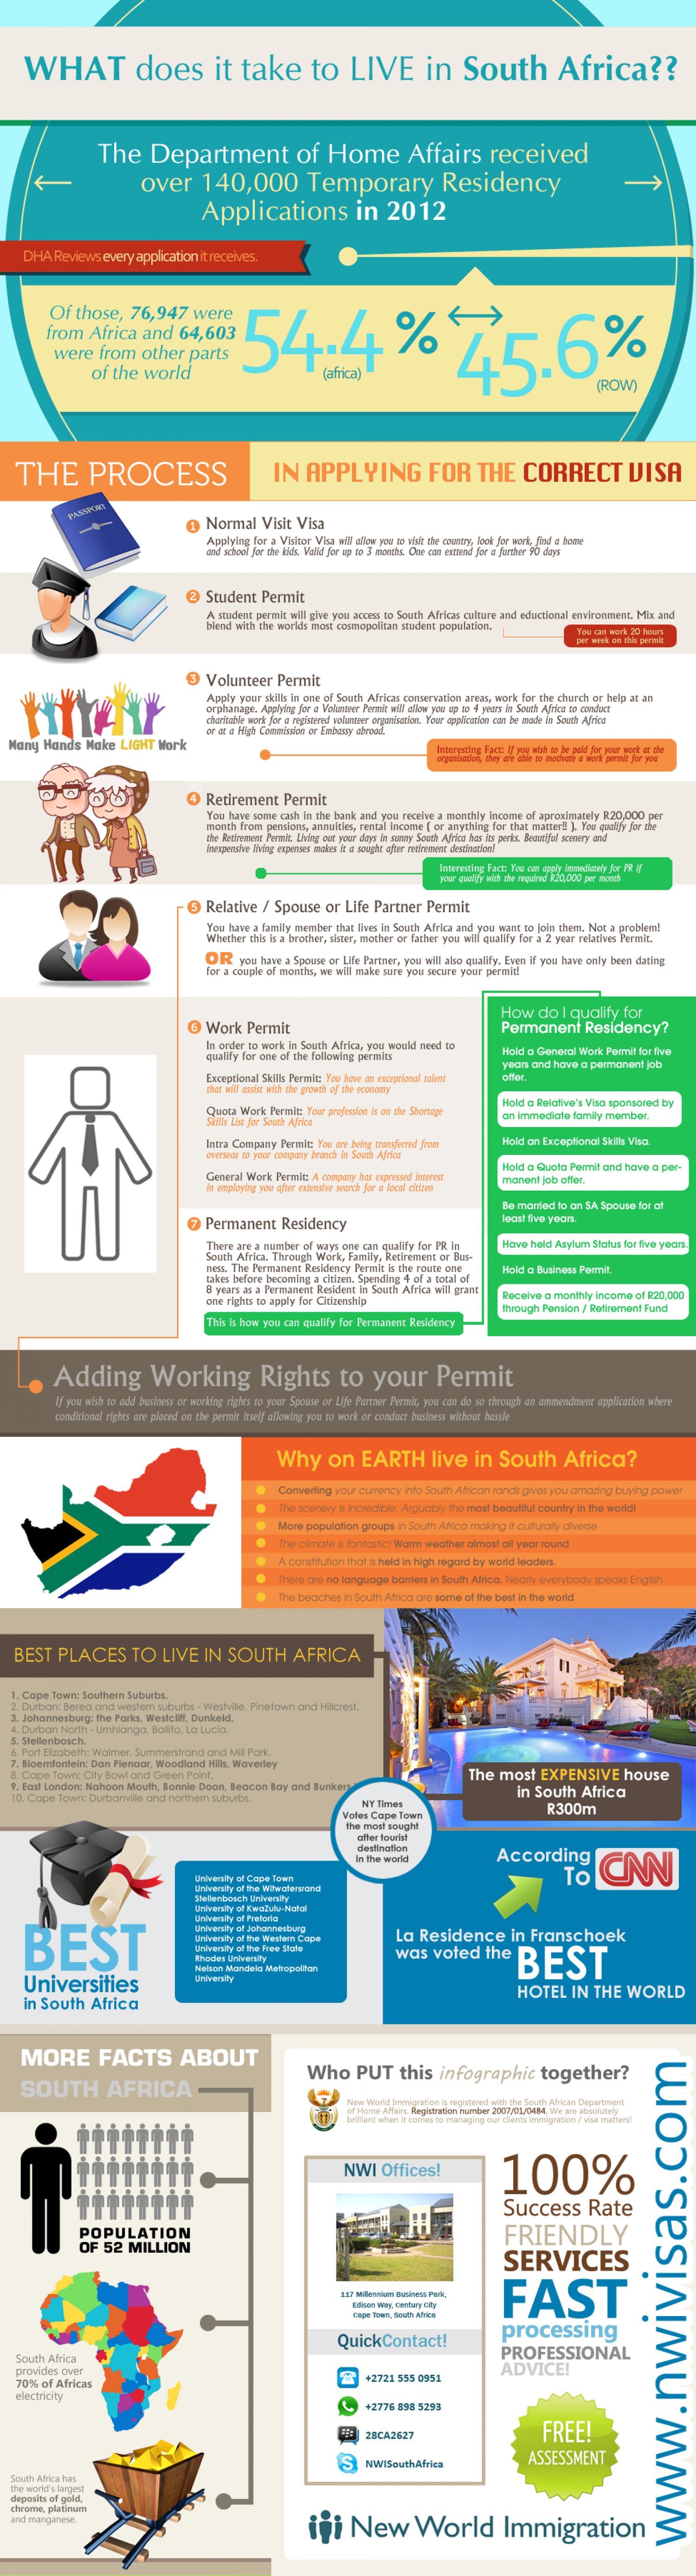 What Does It Take To Live In South Africa Infographic